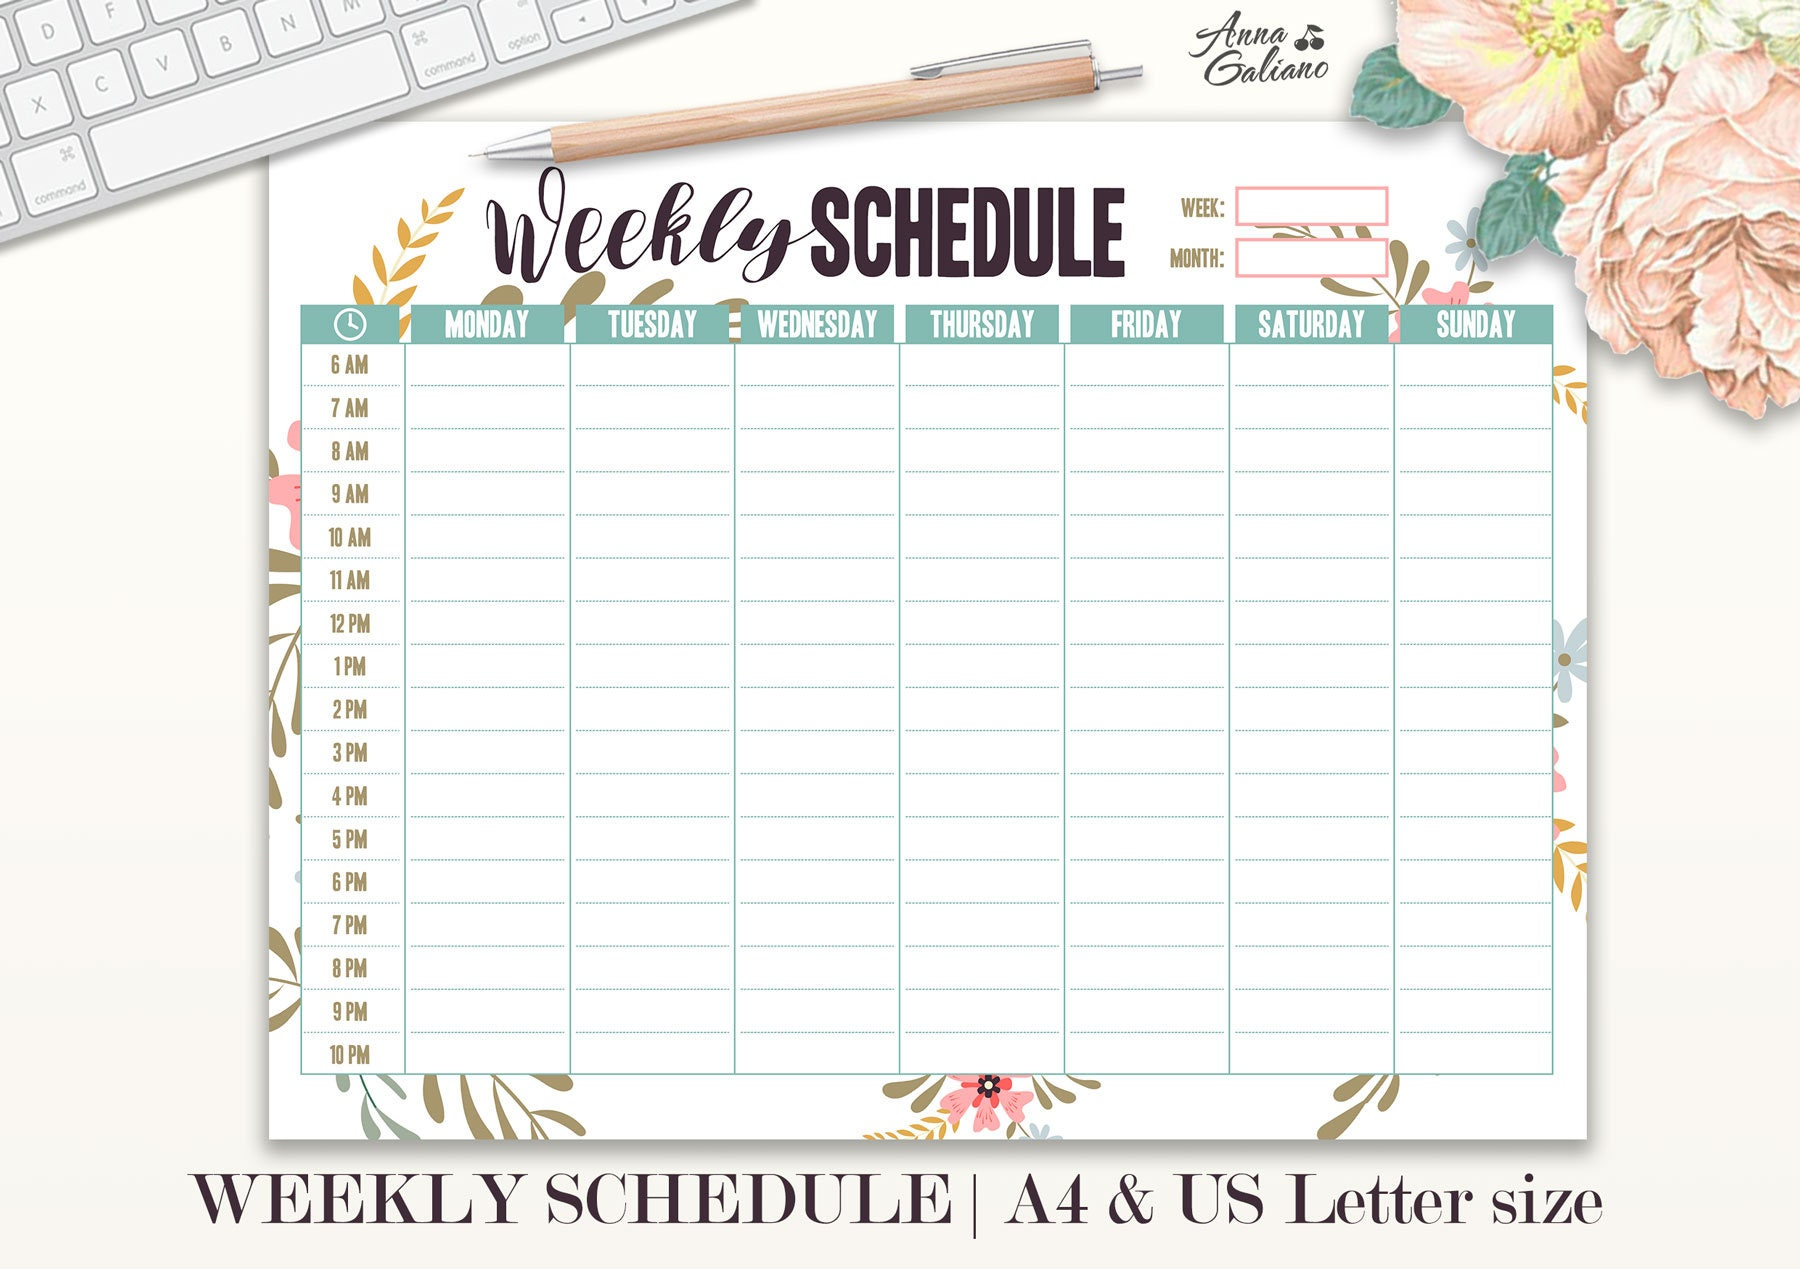 template weekly schedule template with hours hourly chart hour